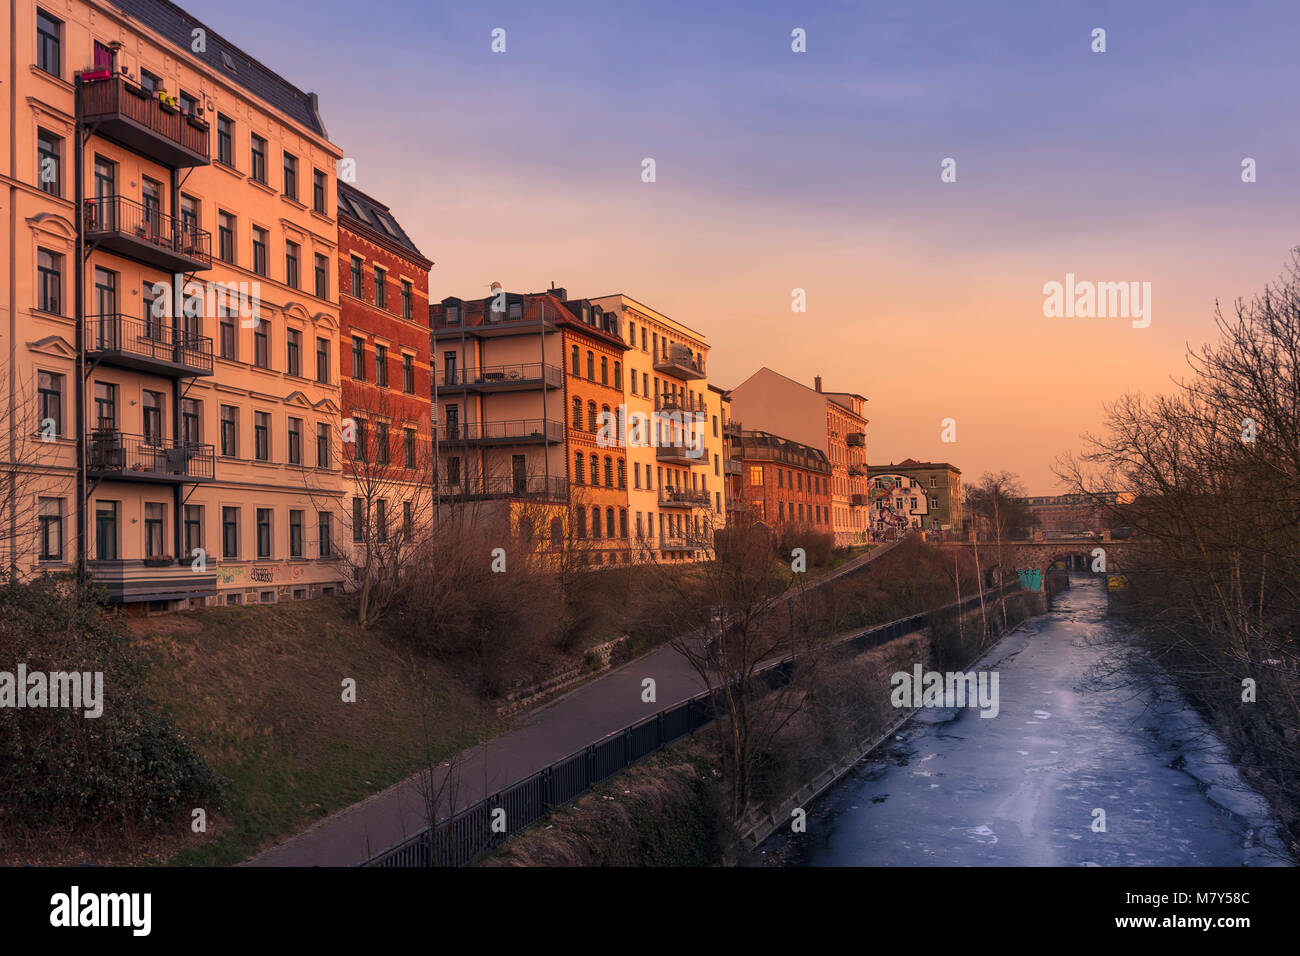 View of the Karl-Heine-Kanal at sunset, in Leipzig. - Stock Image